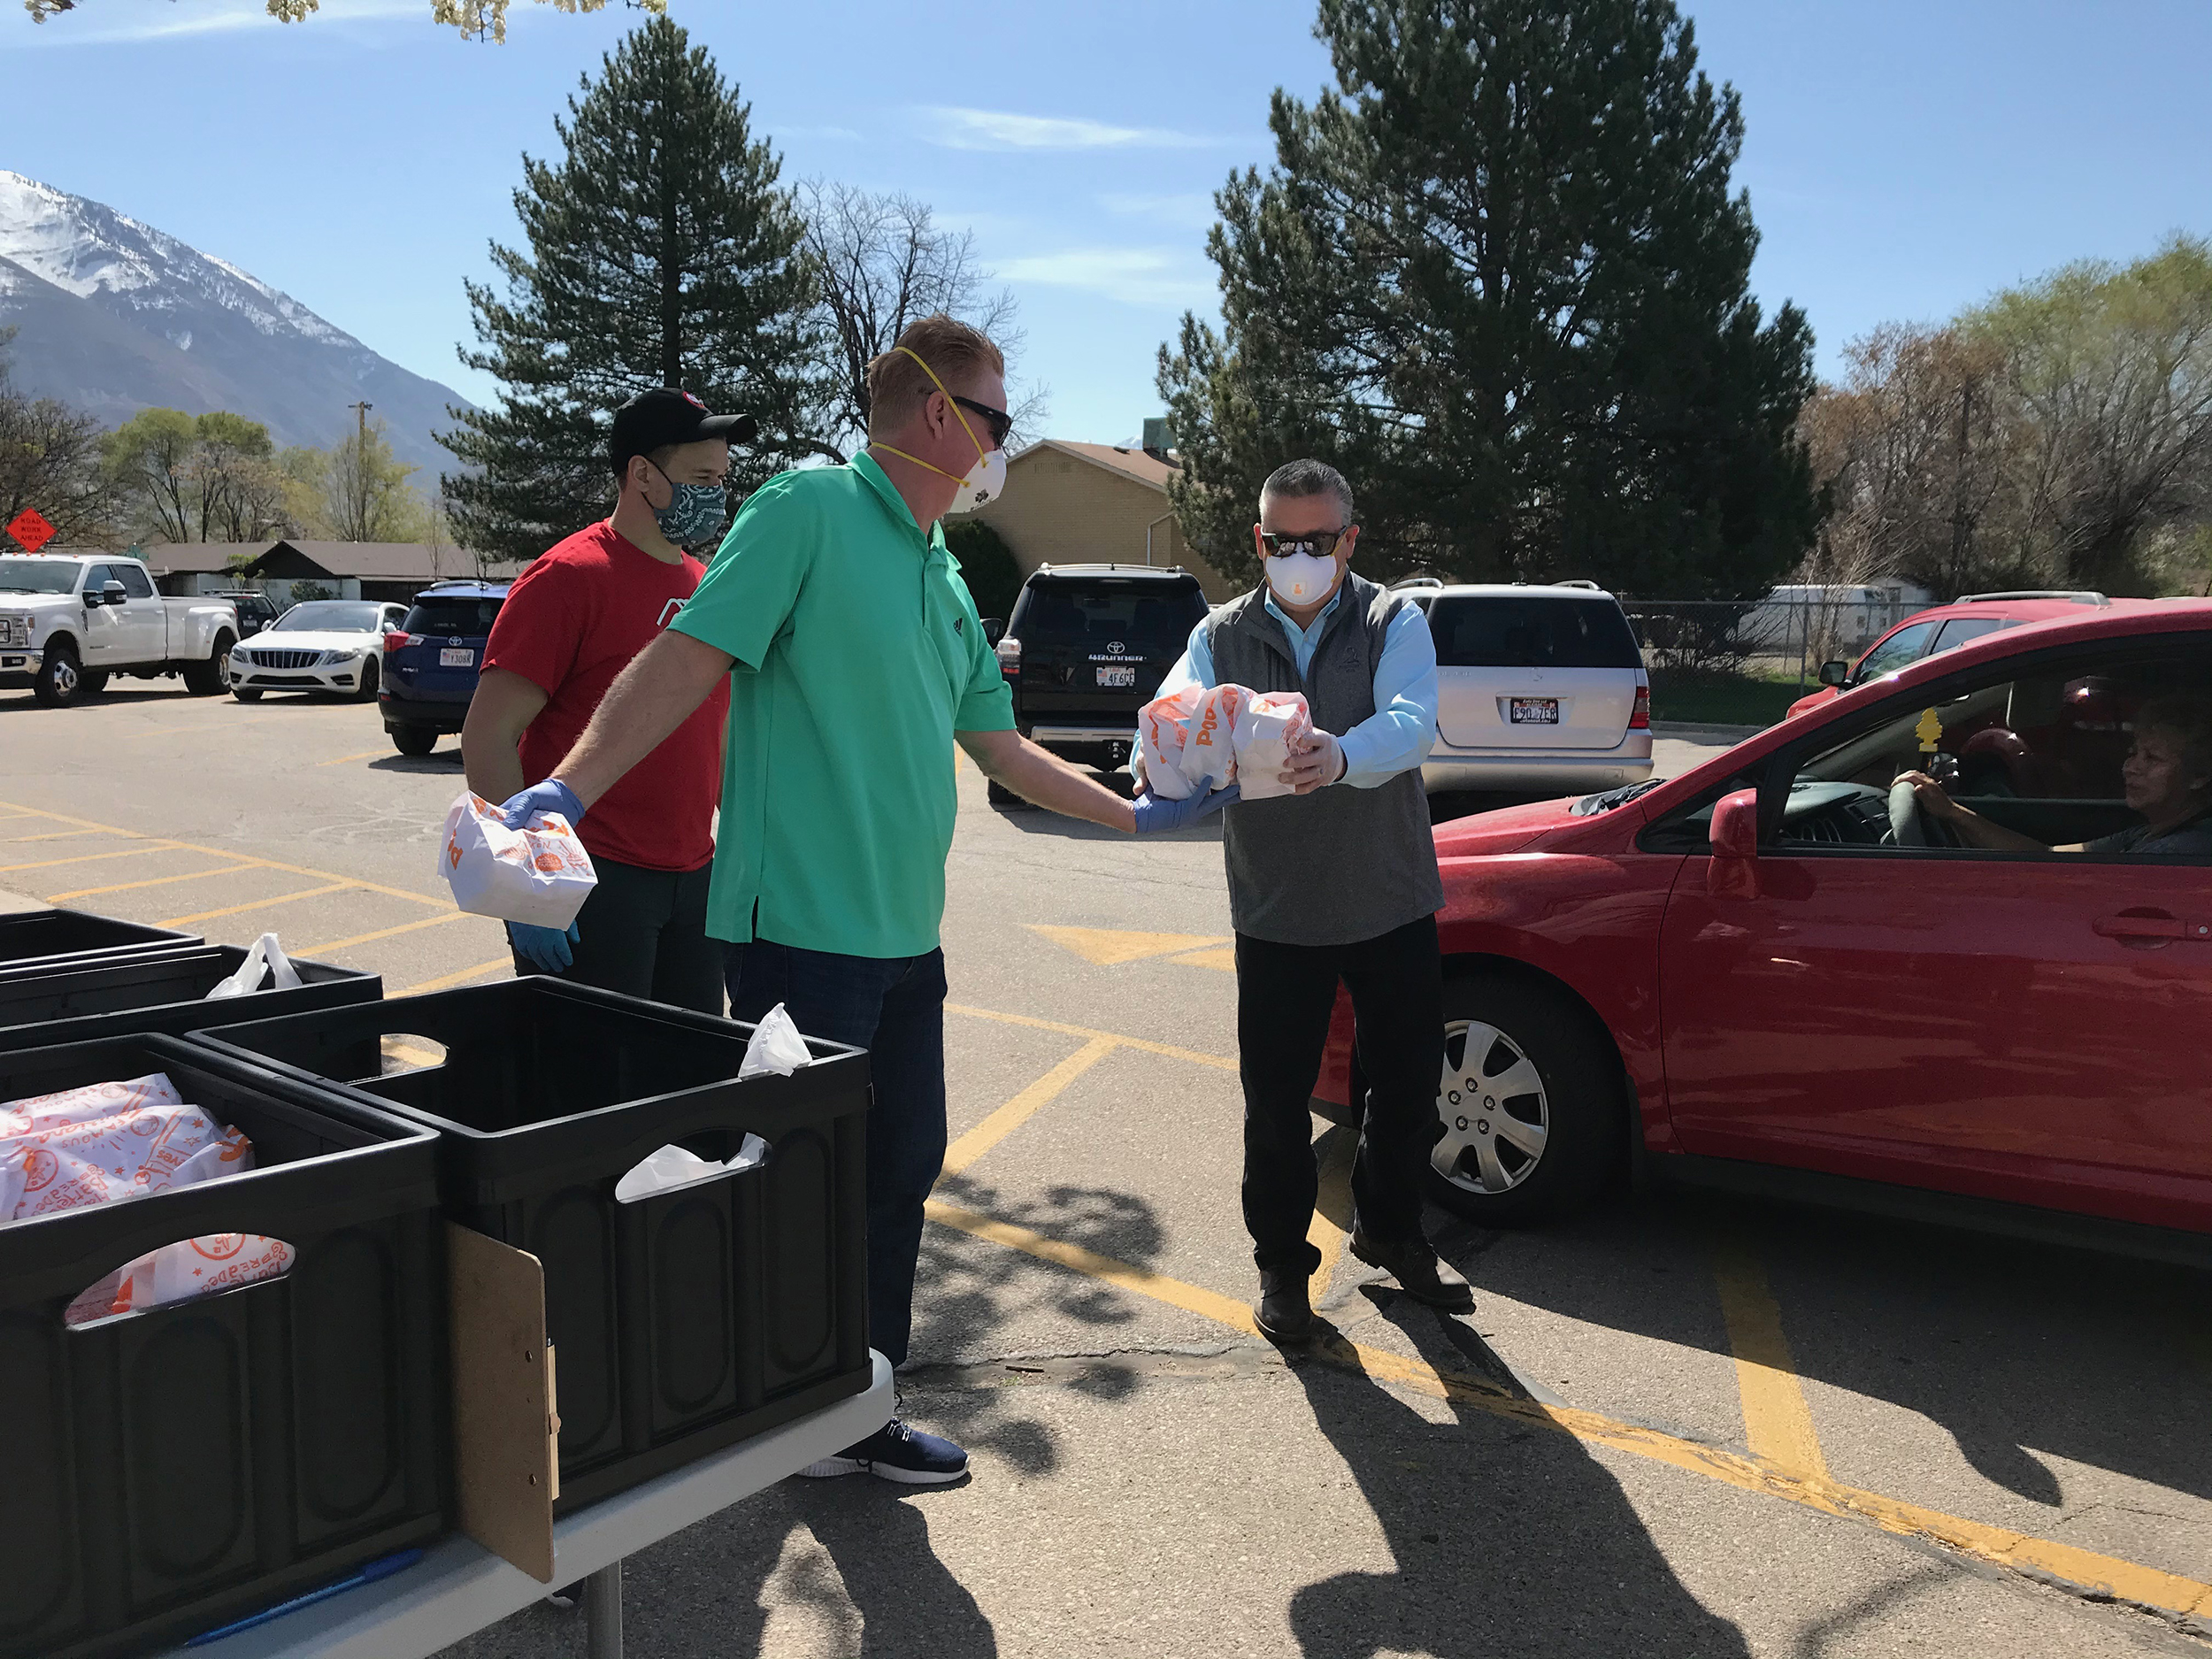 Boys & Girls Club to Provide COVID-19 Relief and Services to Utah County